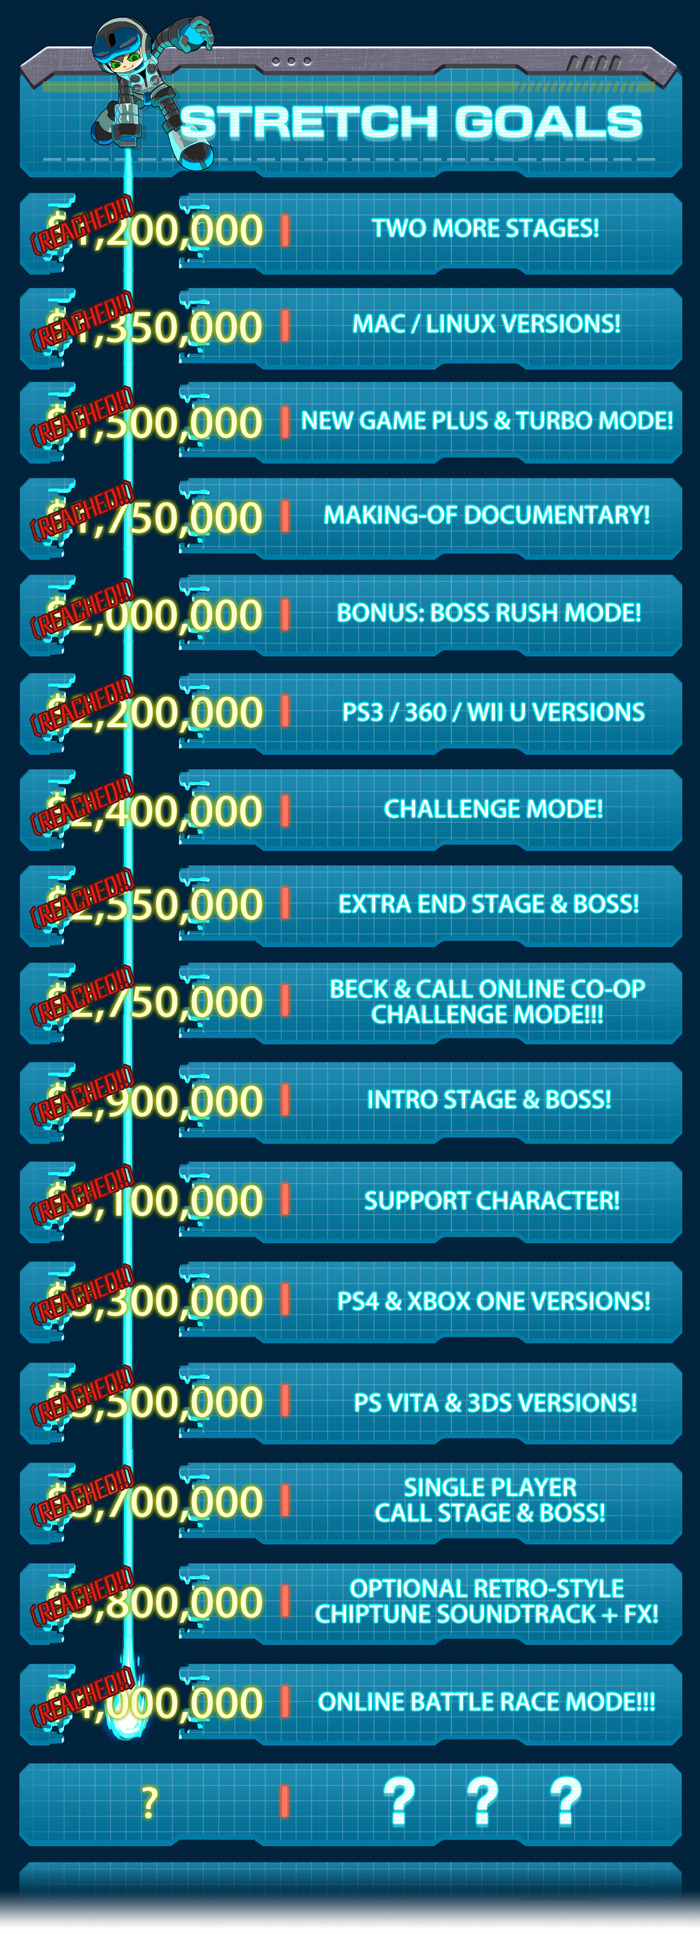 mighty no 9 stretch goals finale